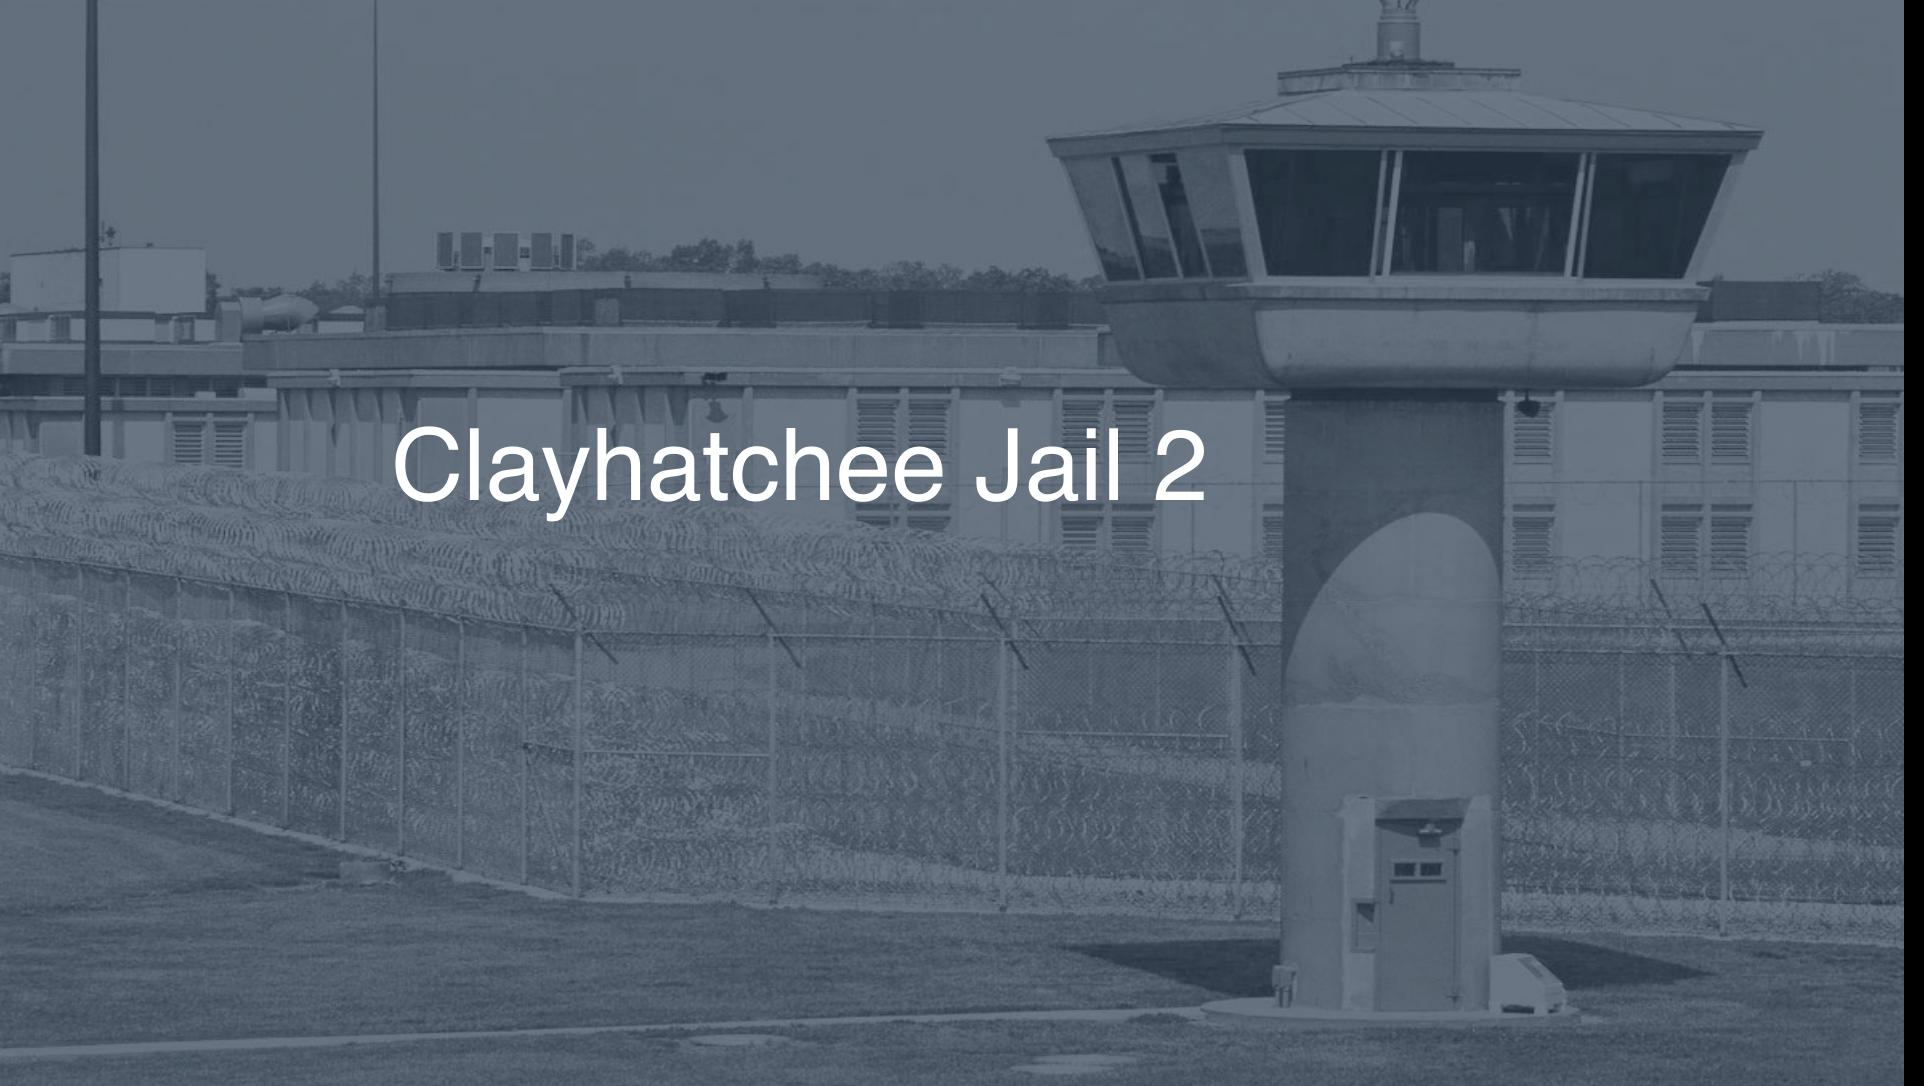 Clayhatchee Jail correctional facility picture